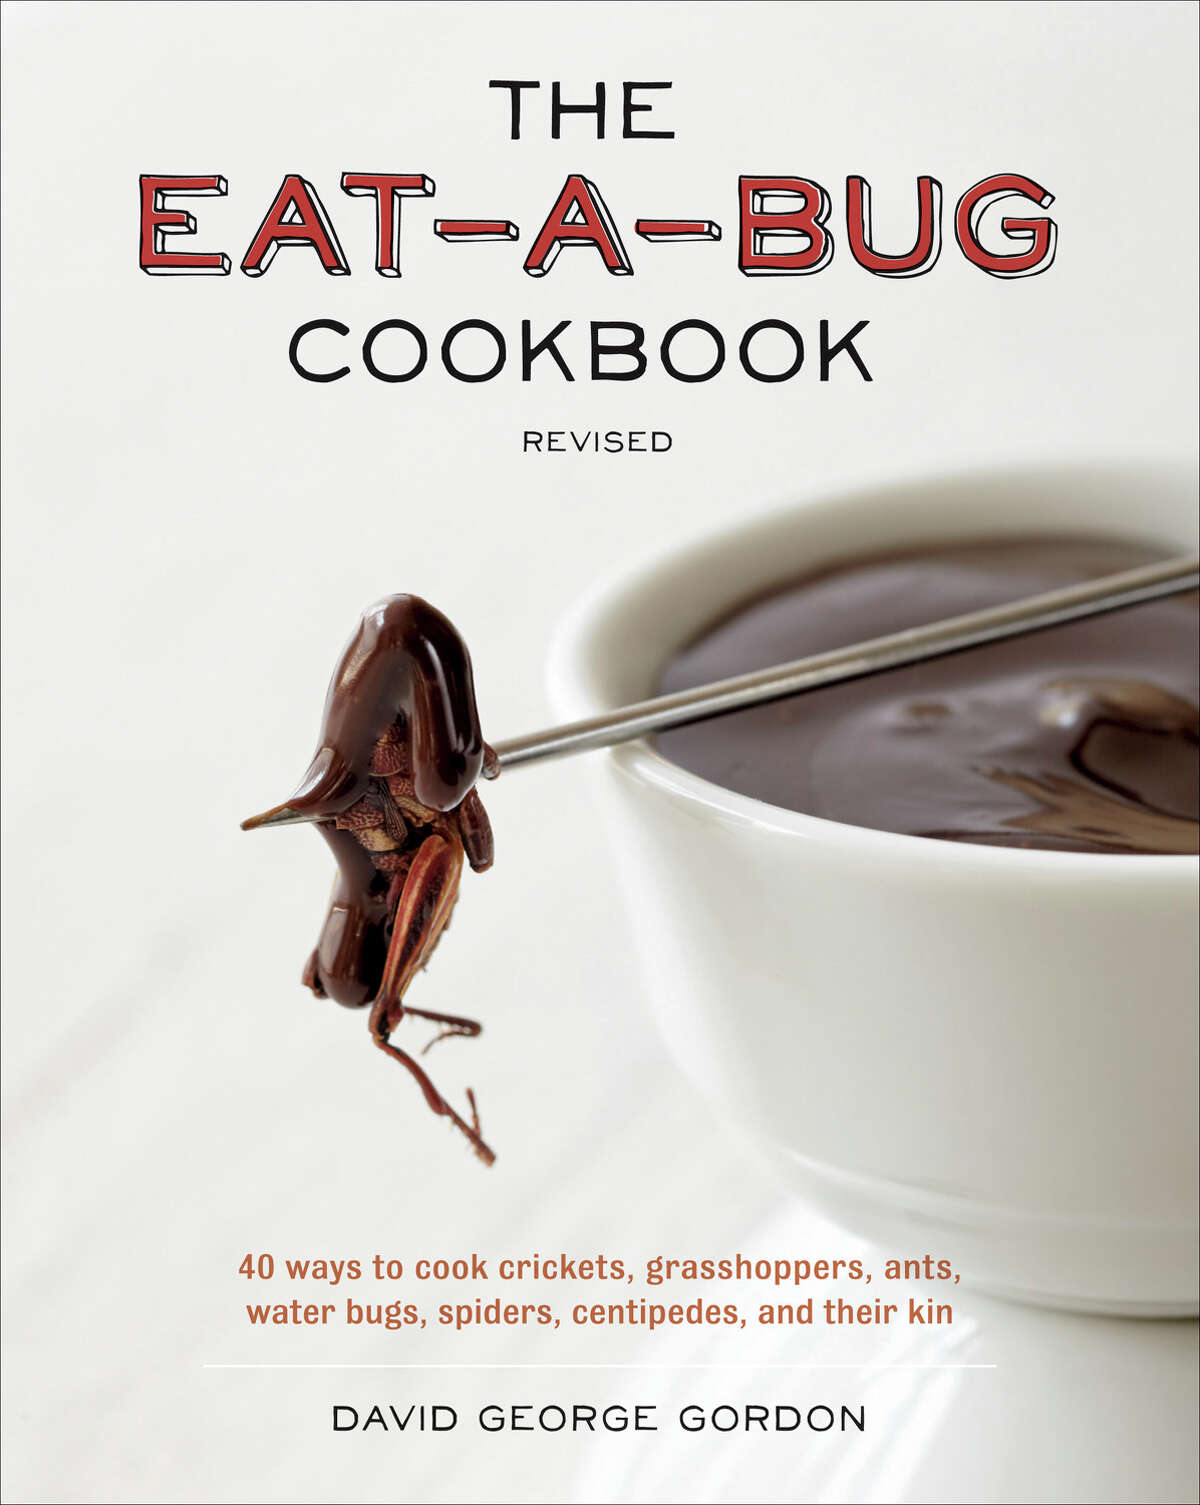 Why eat bugs? They're plentiful, nutritious and cheap to raise (unlike cattle), says